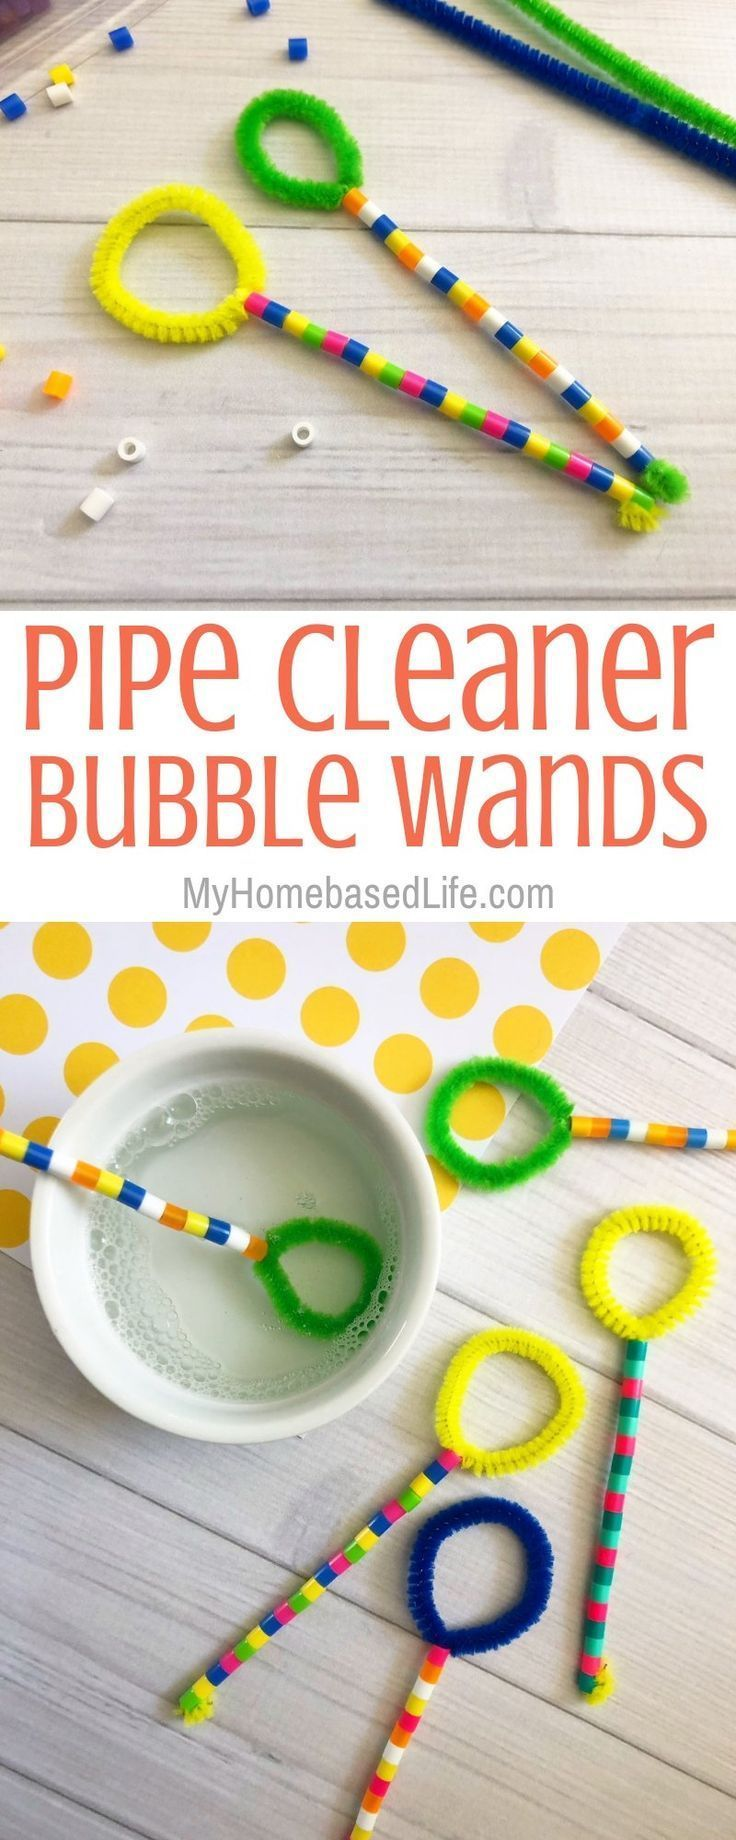 Bubble Wands Follow These Simple Steps To Make Yours